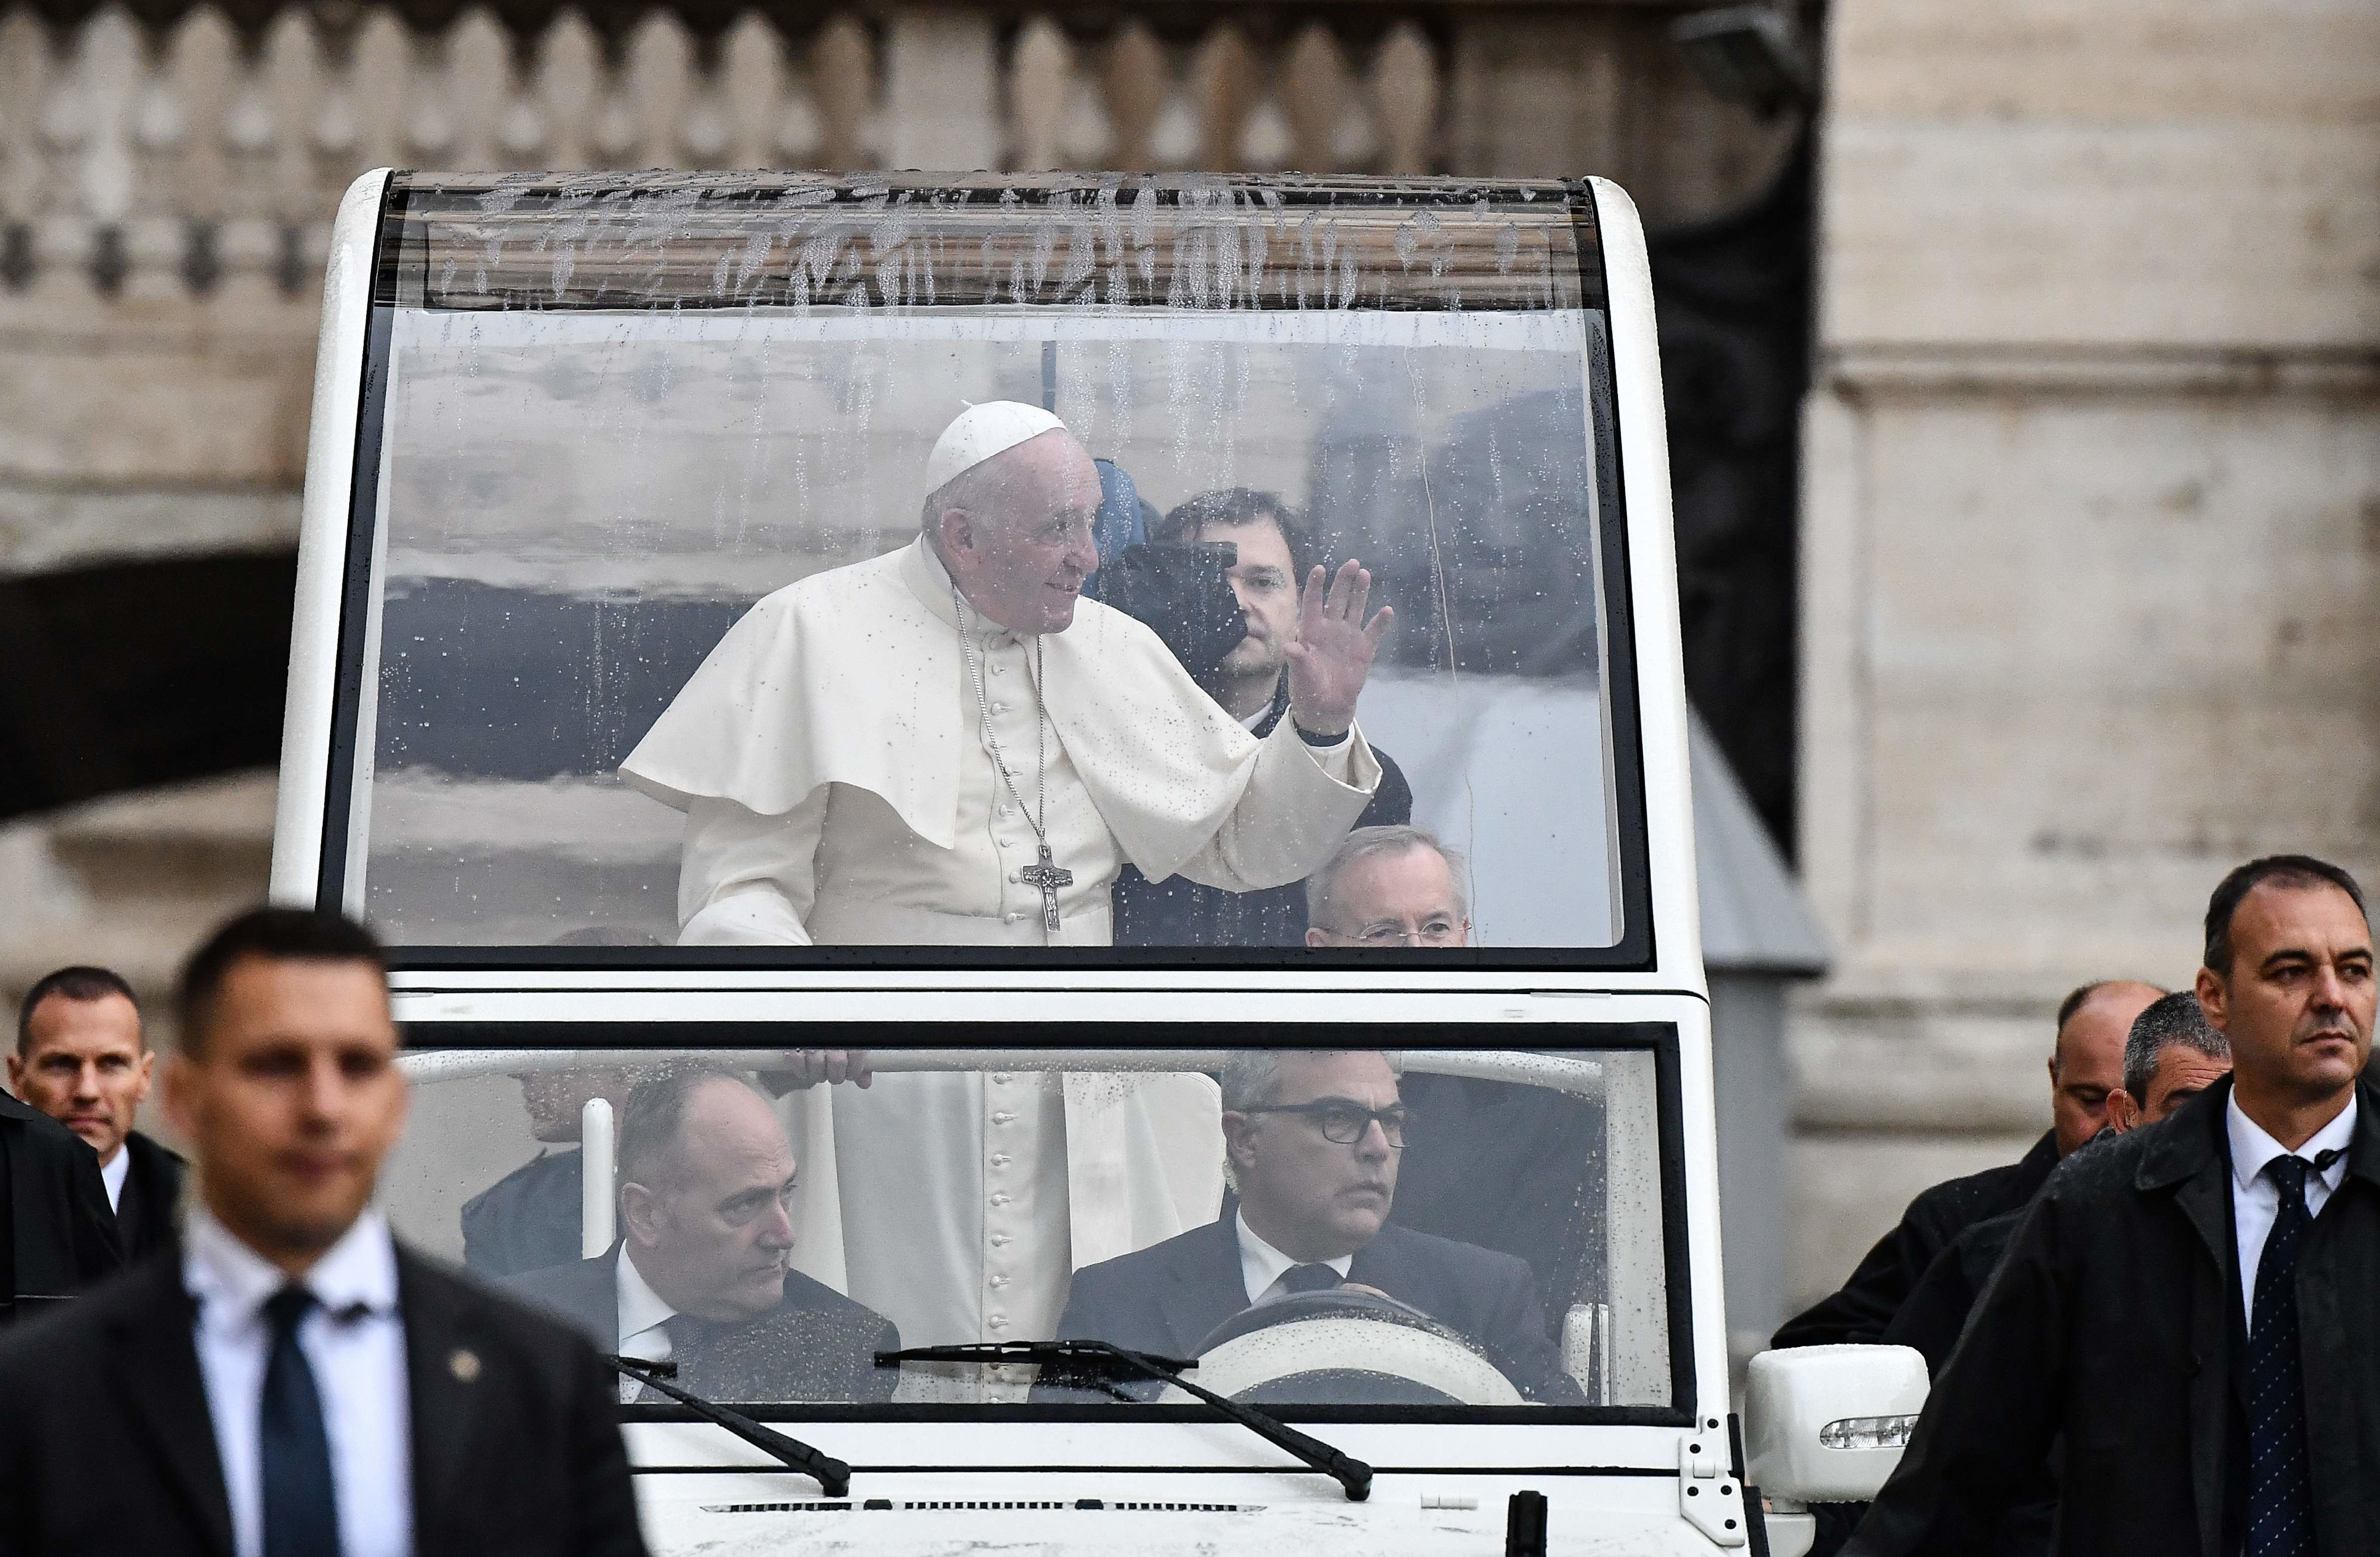 The Popemobile seen here has an overhead cover for protection from the rain but the sides are free from obstruction. Fiat usually supplies the popemobiles but cars from other manufactures too have often been used. (AFP Photo)